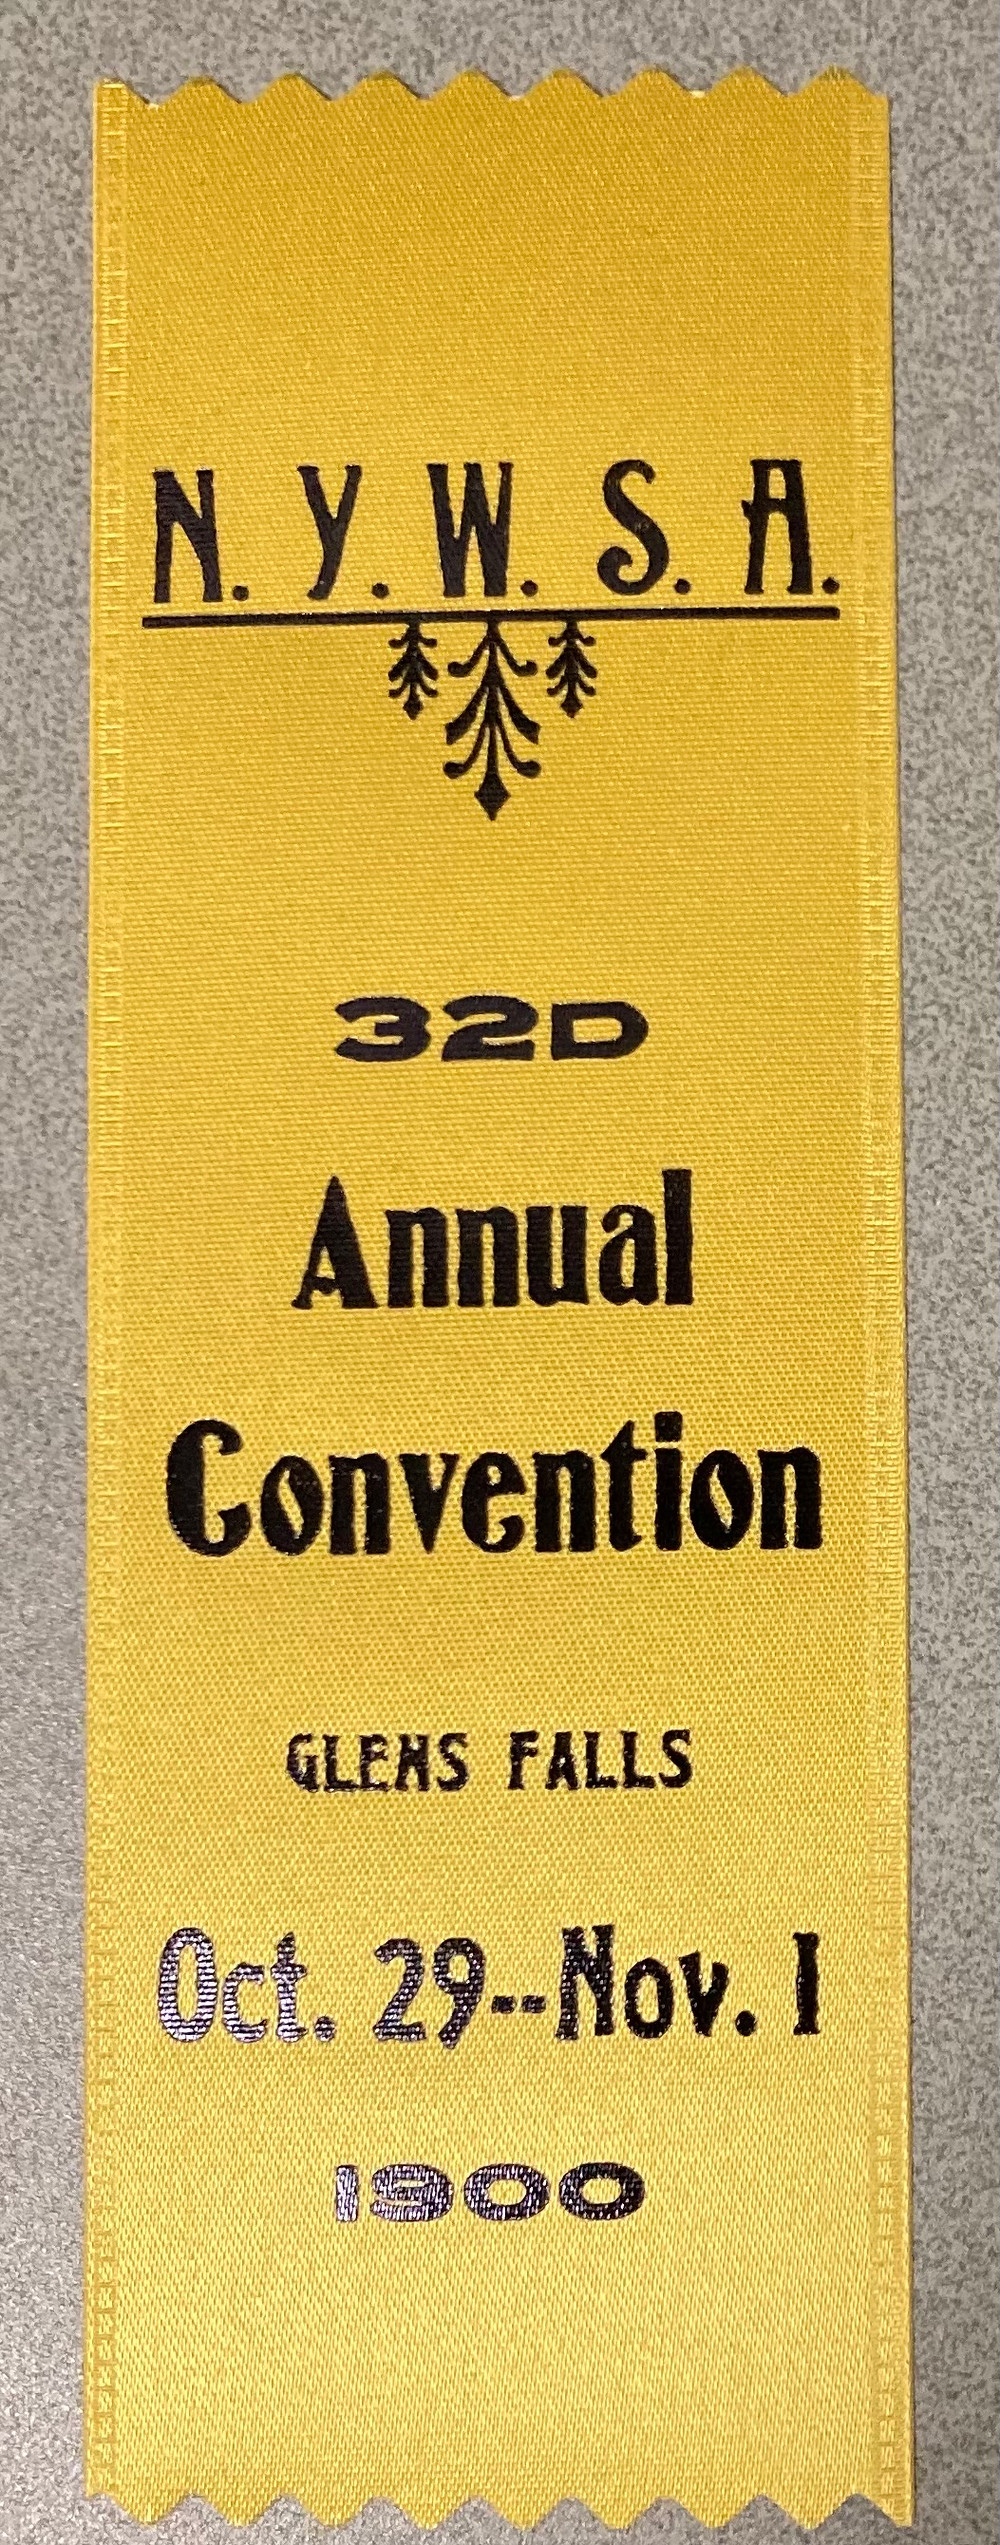 NYWSA ribbon from the 1900 Glens Falls convention, reproduction (Folklife Center at Crandall Public Library)